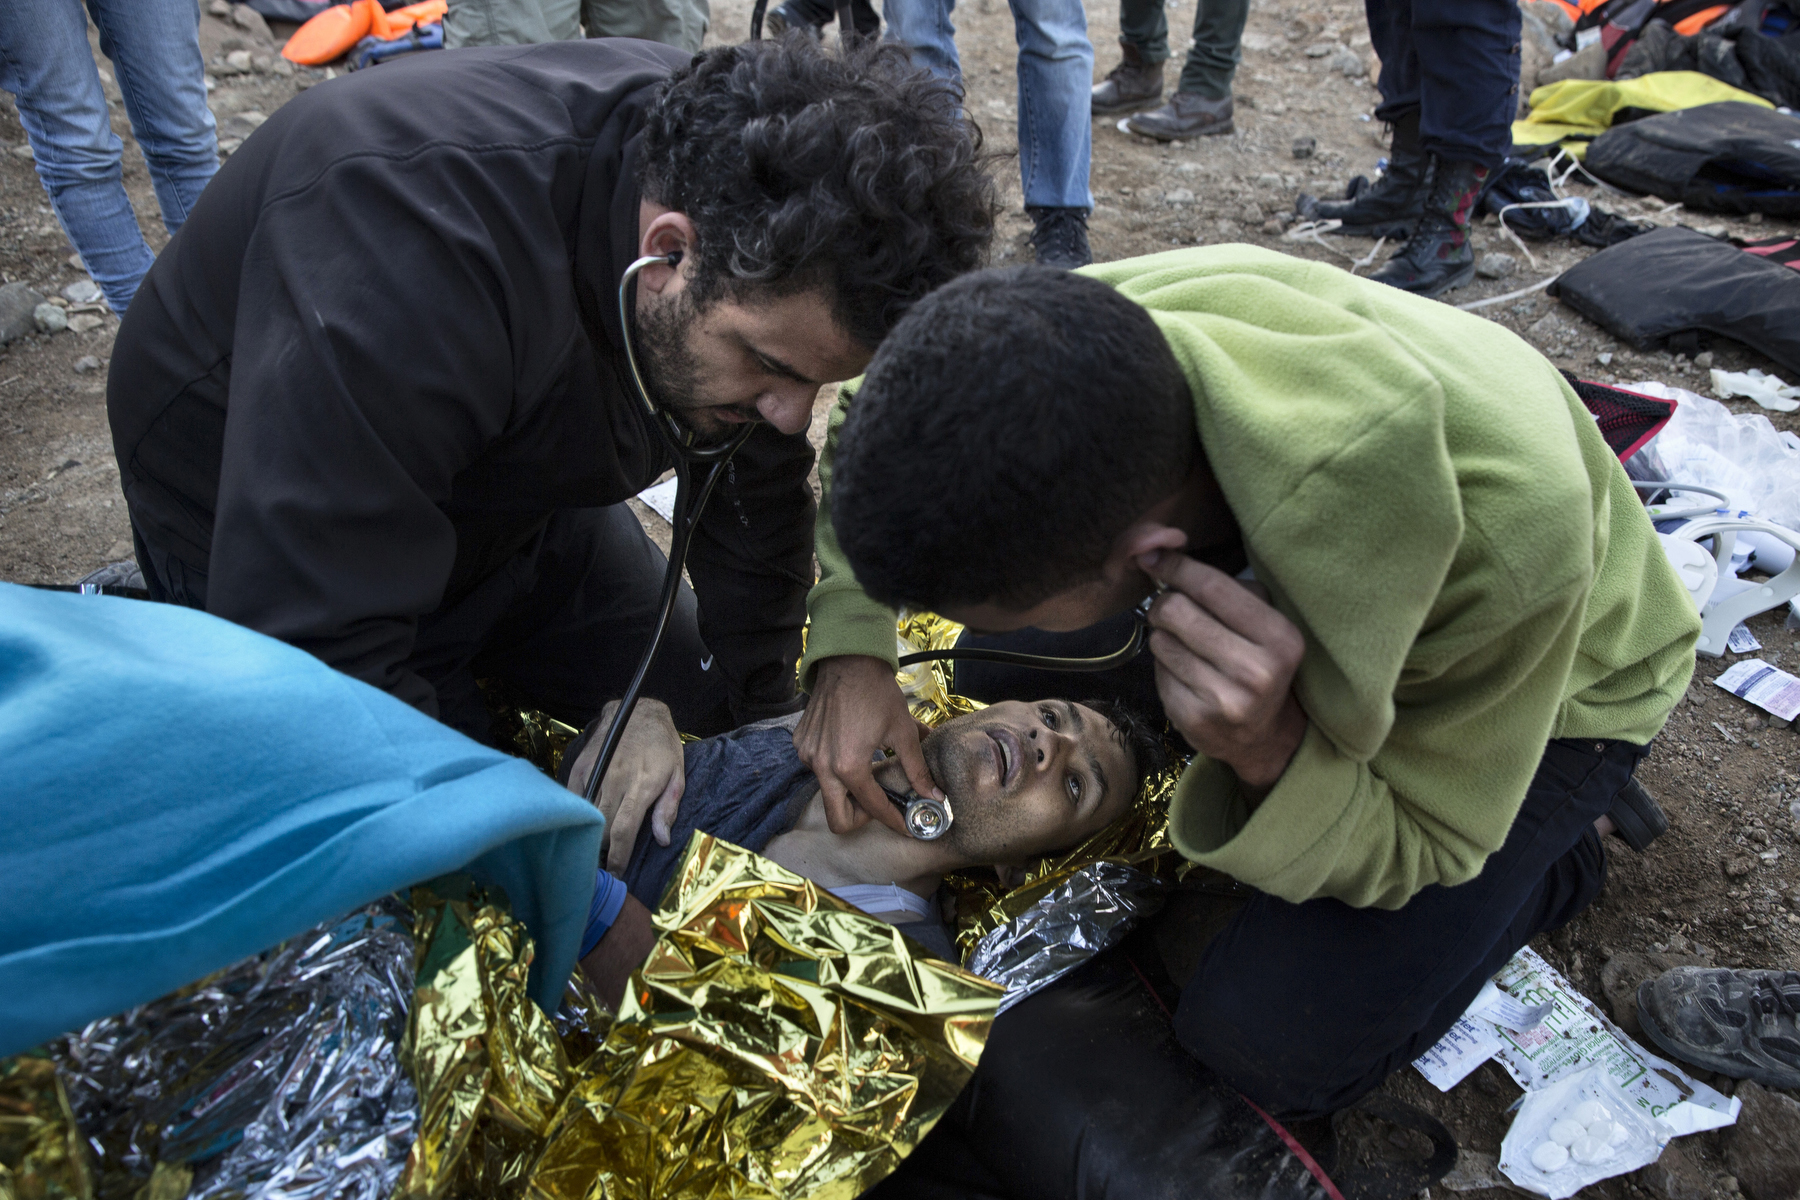 LESBOS, GREECE - OCTOBER 30: Israeli Doctor Essam Daod (left) gives CPR to a refugee who later died after being rescued from the open waters of the Aegean sea on the island of Lesbos, Greece on October 30, 2015. The man died despite the efforts of the lifeguards and medical personnel to revive him. Dozens of rafts and boats are still making the journey daily over 590,000 people have crossed into the gateway of Europe. Nearly all of those are from the war zones of Syria, Iraq and Afghanistan. (Photo by Paula Bronstein)